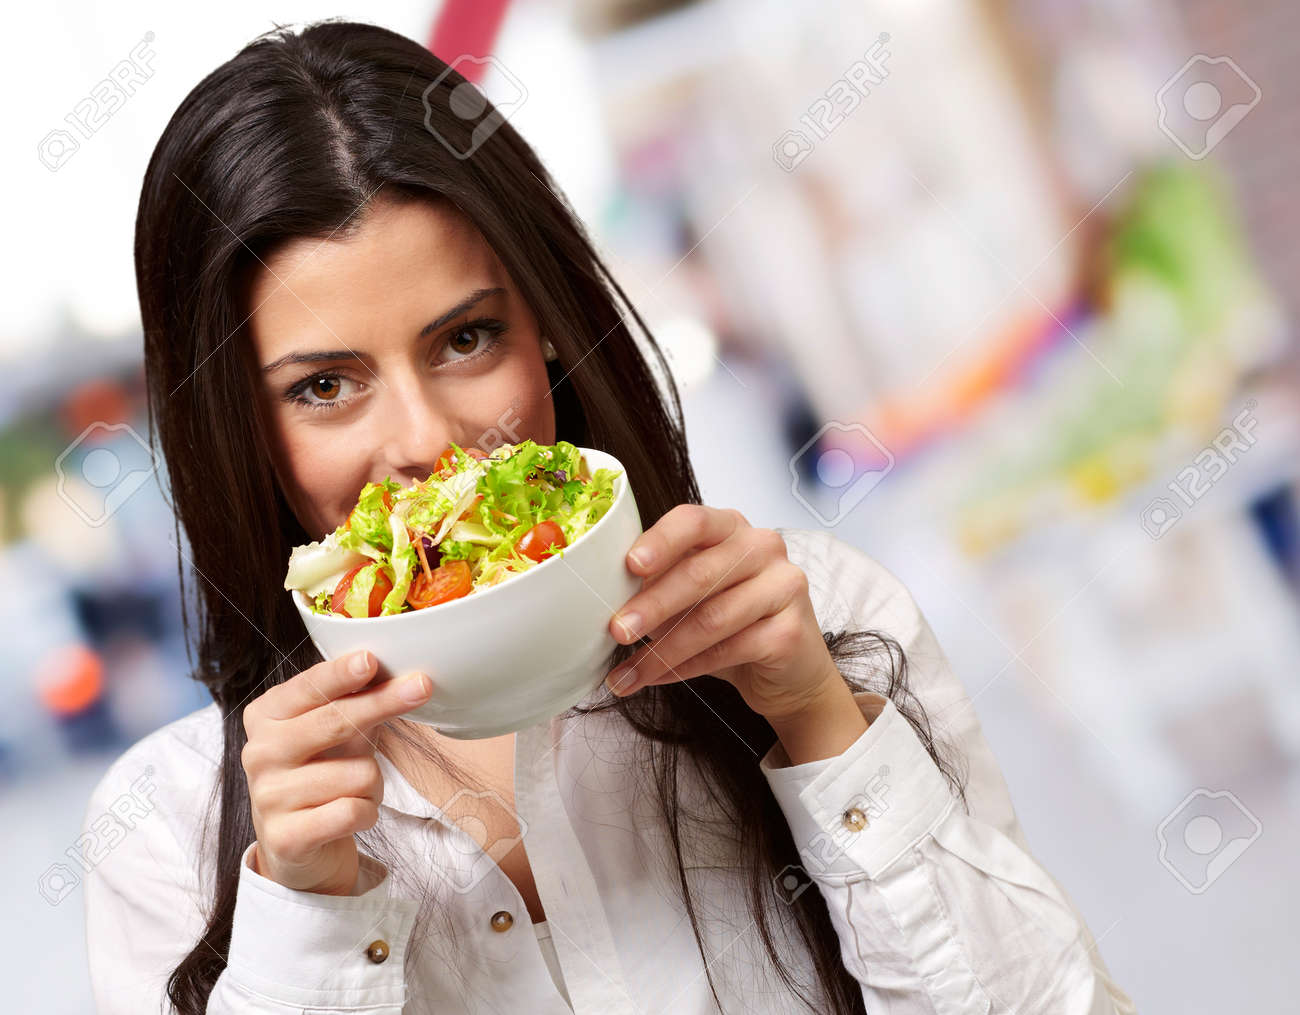 portrait of young woman holding a fresh salad at street - 16252295